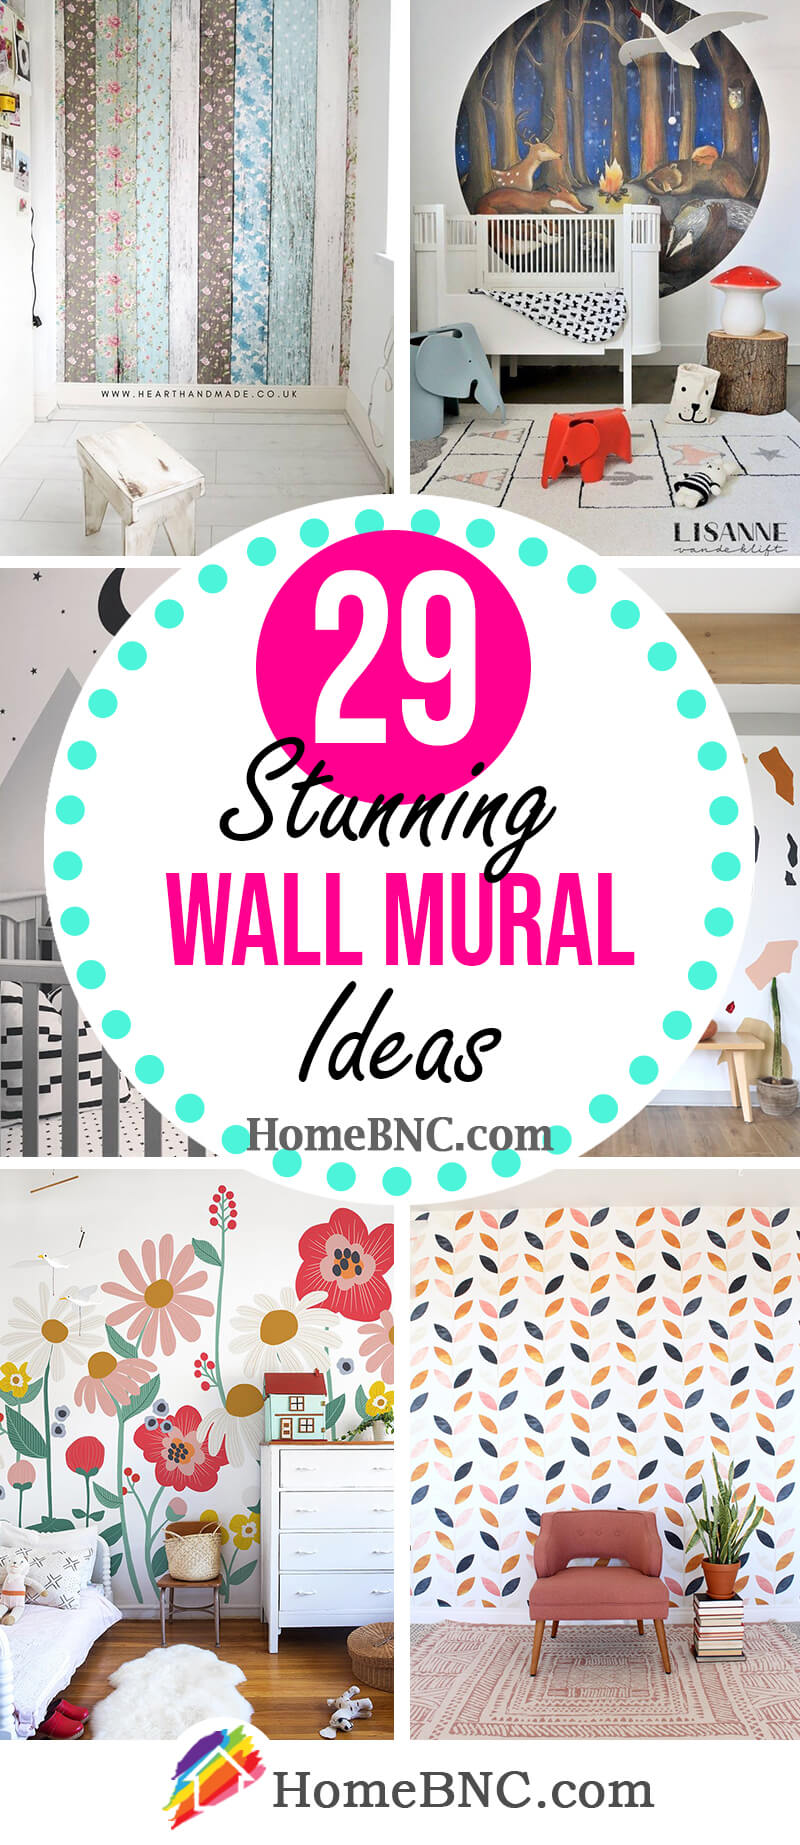 Best Wall Mural Ideas and Designs